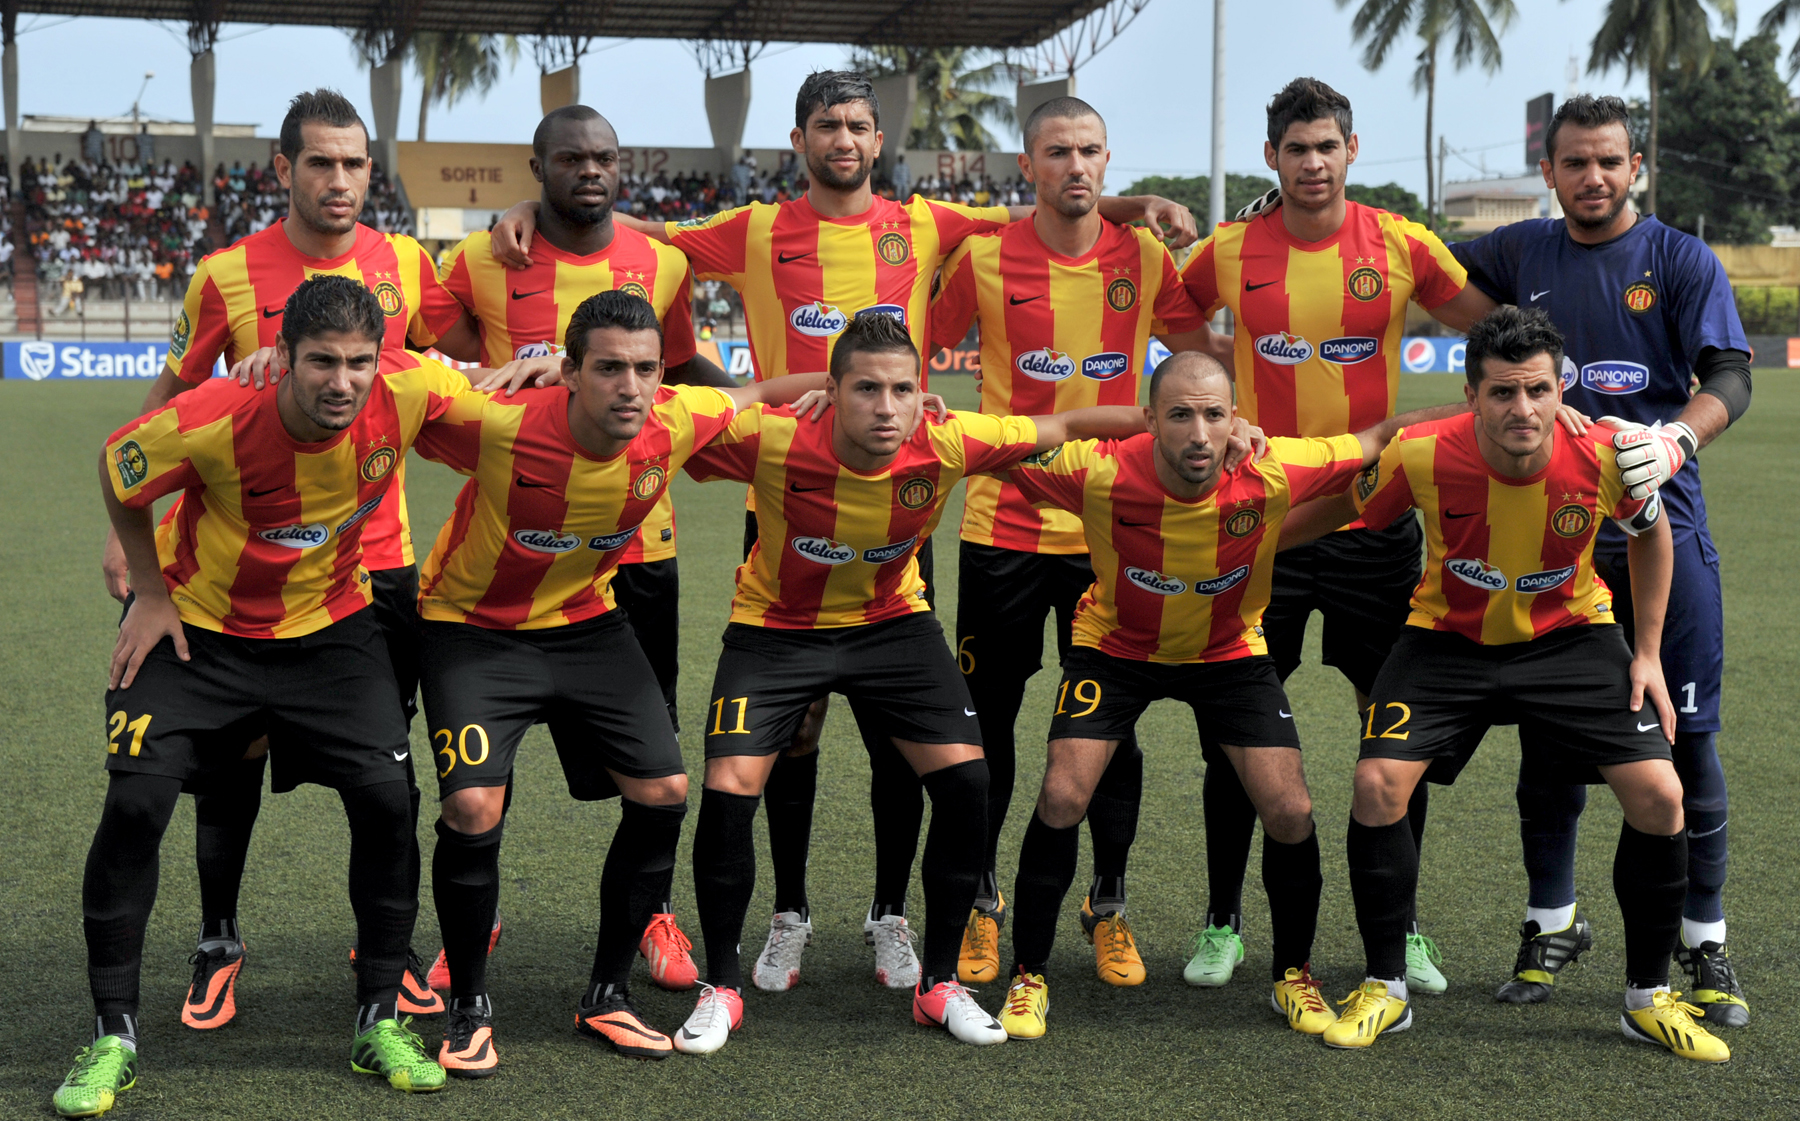 Esperance Tunis African Champions league on August 18, 2013